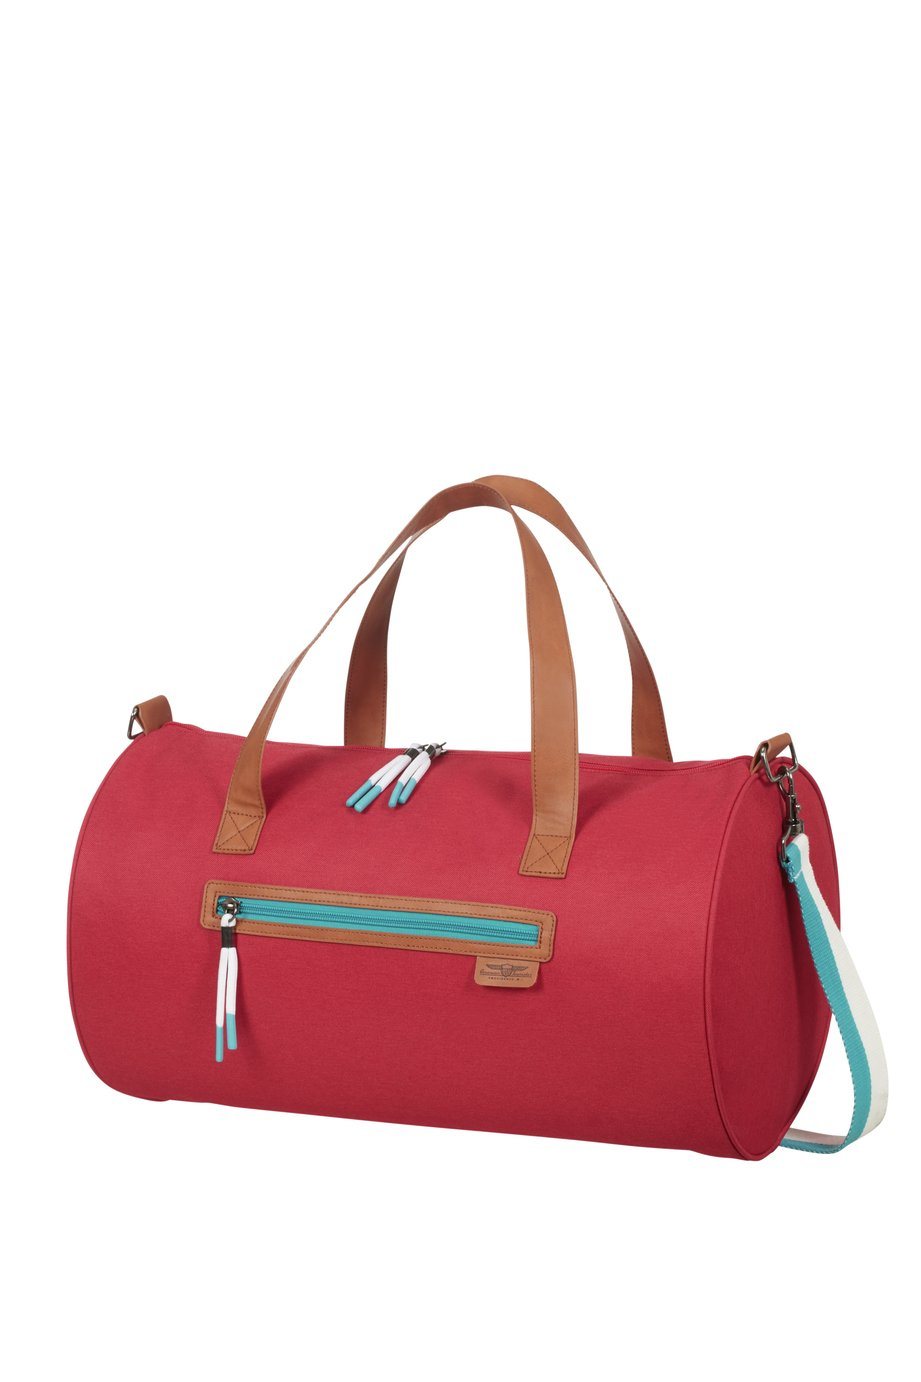 American Tourister Small Red Holdall